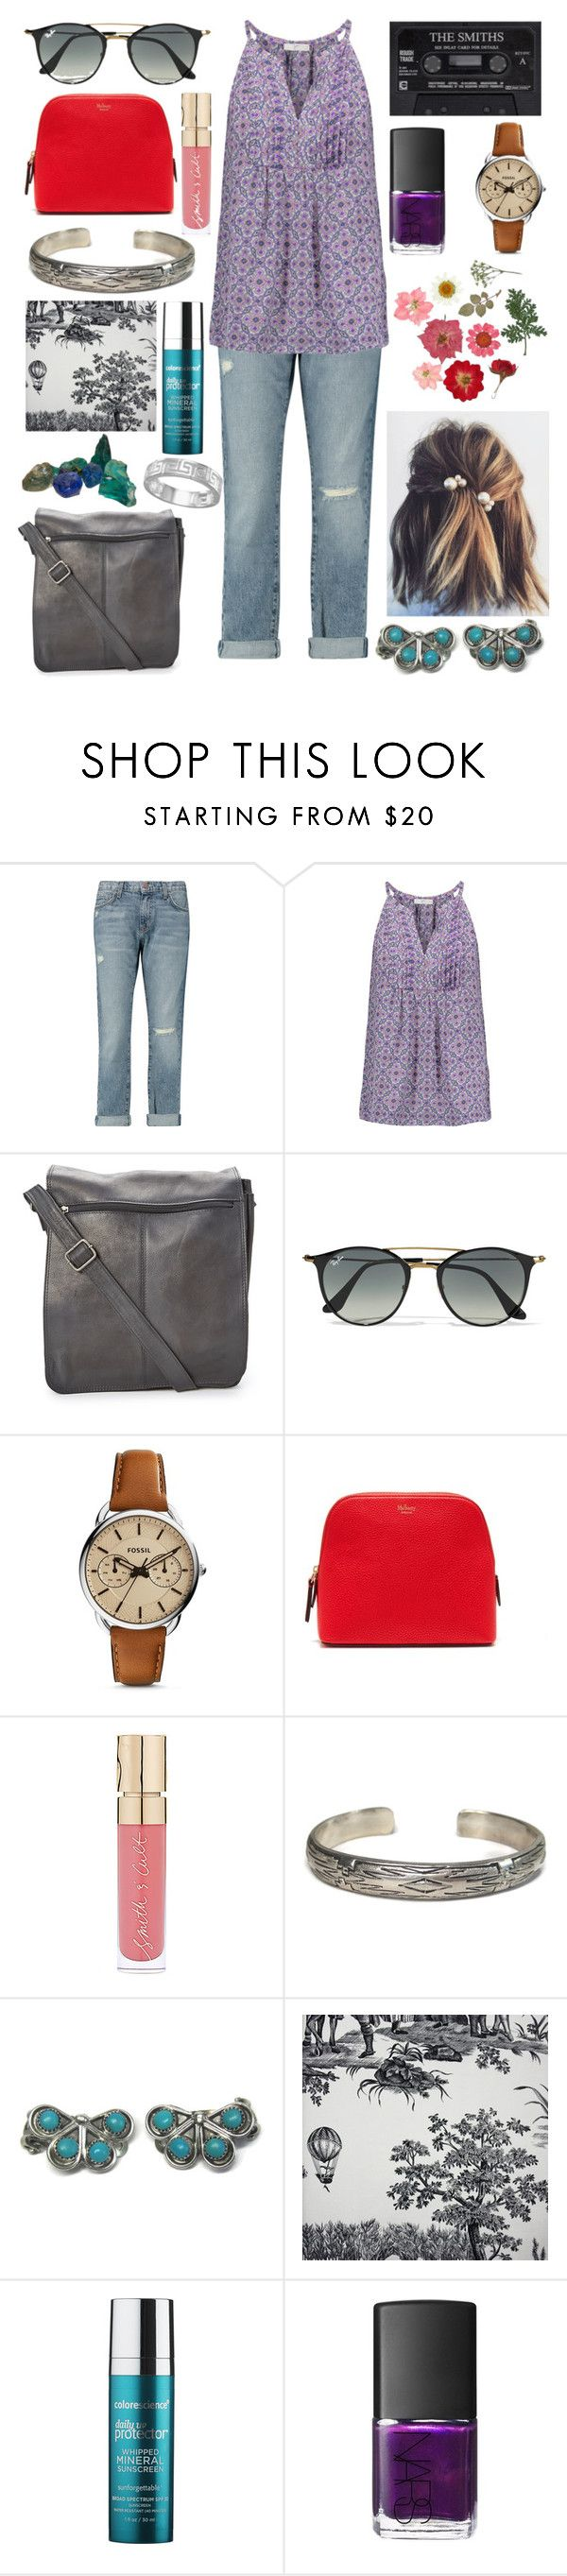 """""""Esme"""" by katherineried ❤ liked on Polyvore featuring Current/Elliott, Joie, Le Donne, Ray-Ban, FOSSIL, Apsara, Mulberry, Smith & Cult, NARS Cosmetics and BillyTheTree"""